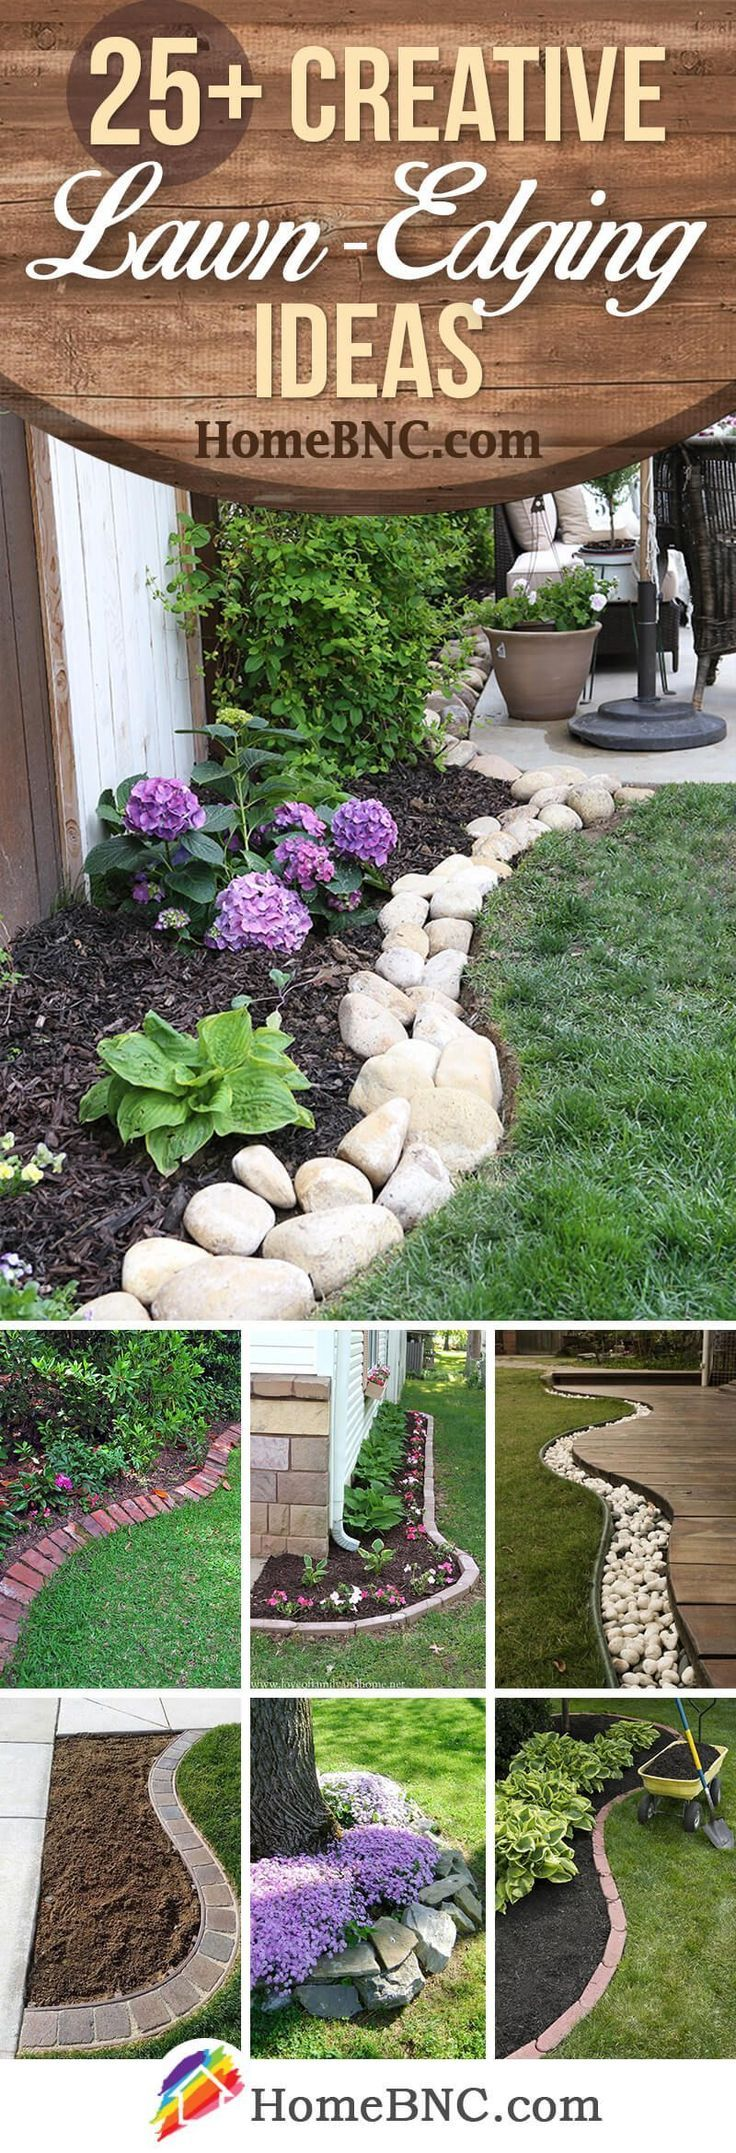 Lawnedging ideas front yard pinterest edging ideas lawn and